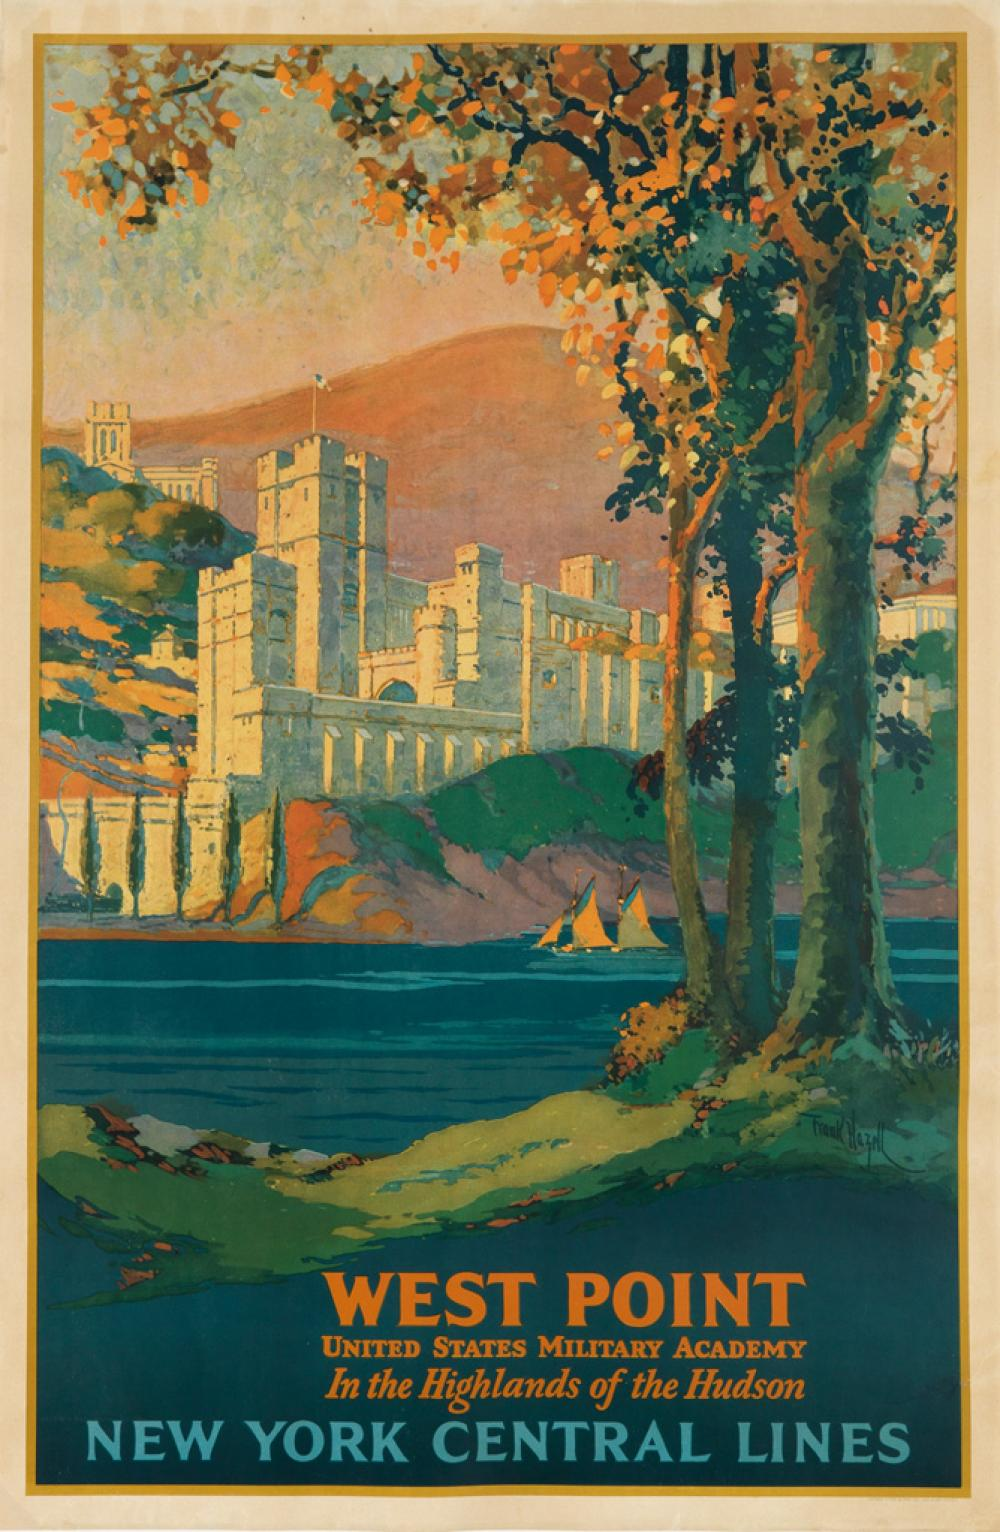 FRANK HAZELL (1883-1957). WEST POINT / NEW YORK CENTRAL LINES. 1927. 40x26 inches, 103x68 cm. Latham Litho & Ptg. Co., Long Island City